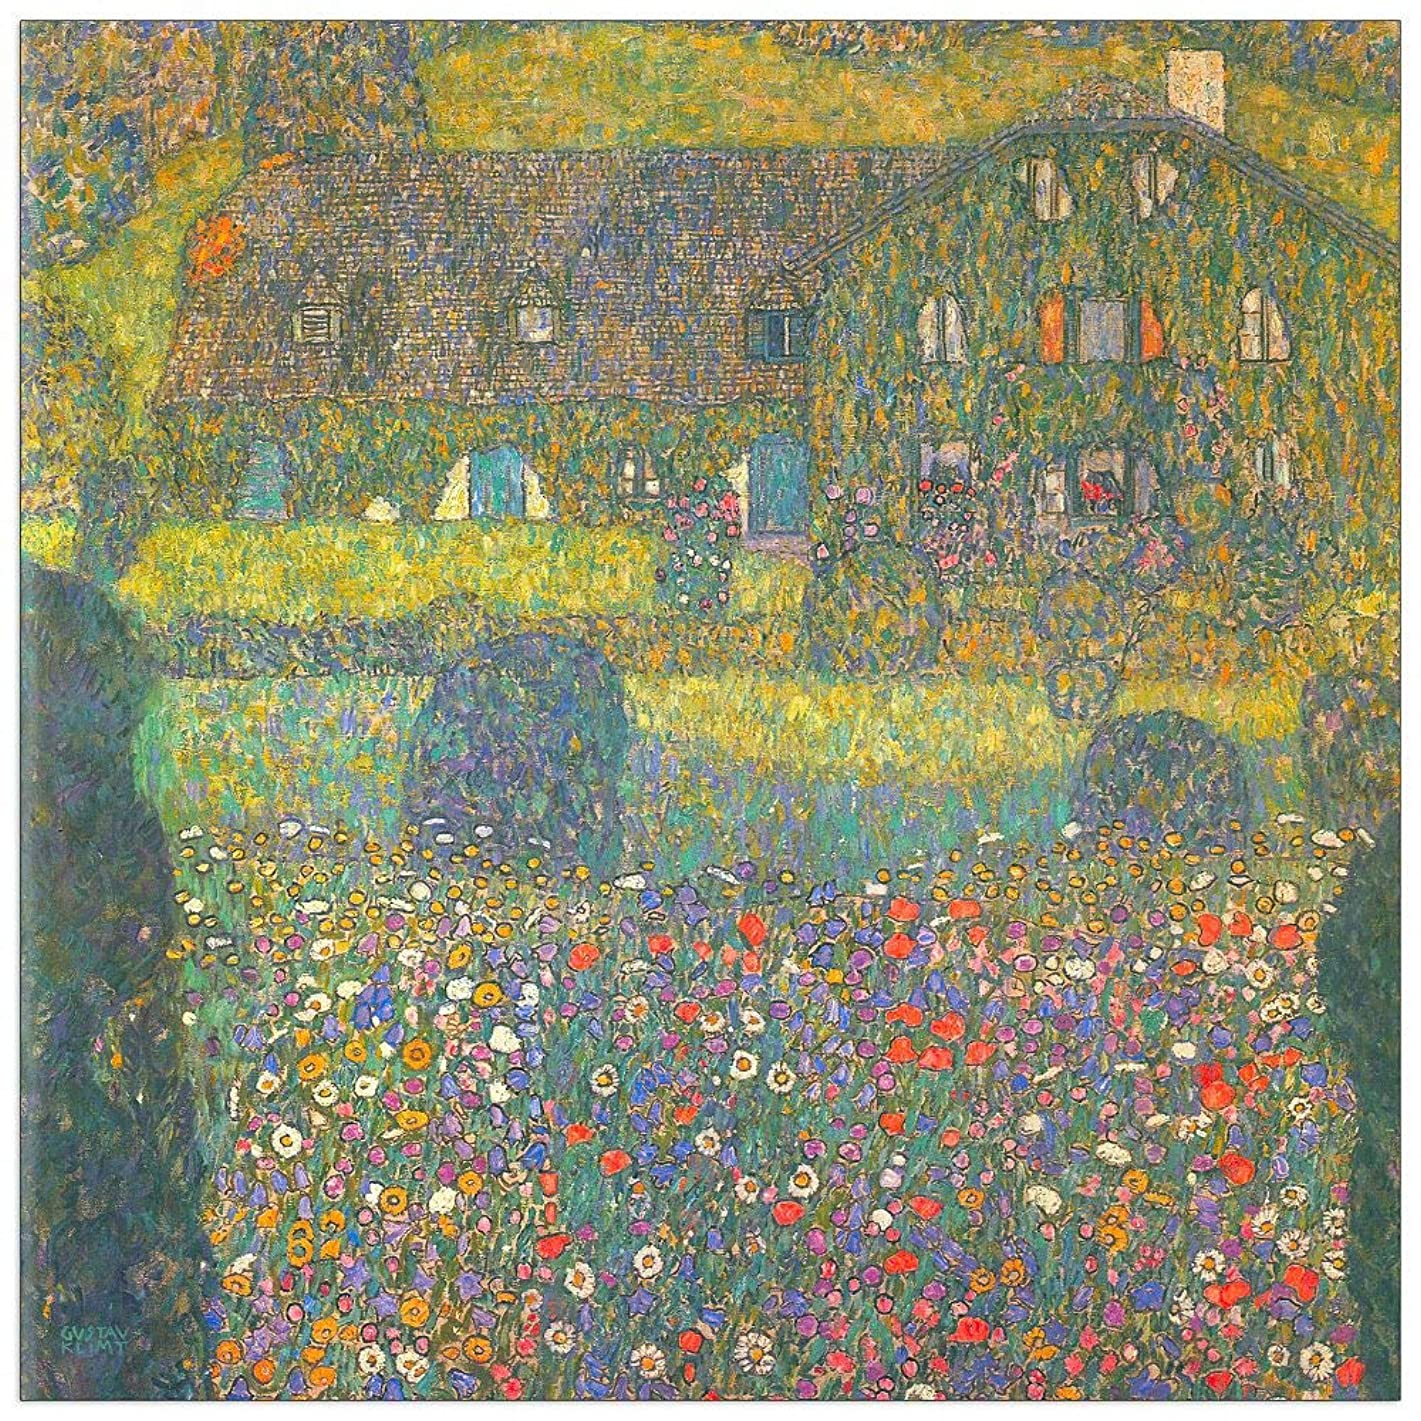 ArtPlaza TW90357 Klimt Gustav - House in Attersee Decorative Panel 23.5x23.5 Inch Multicolored